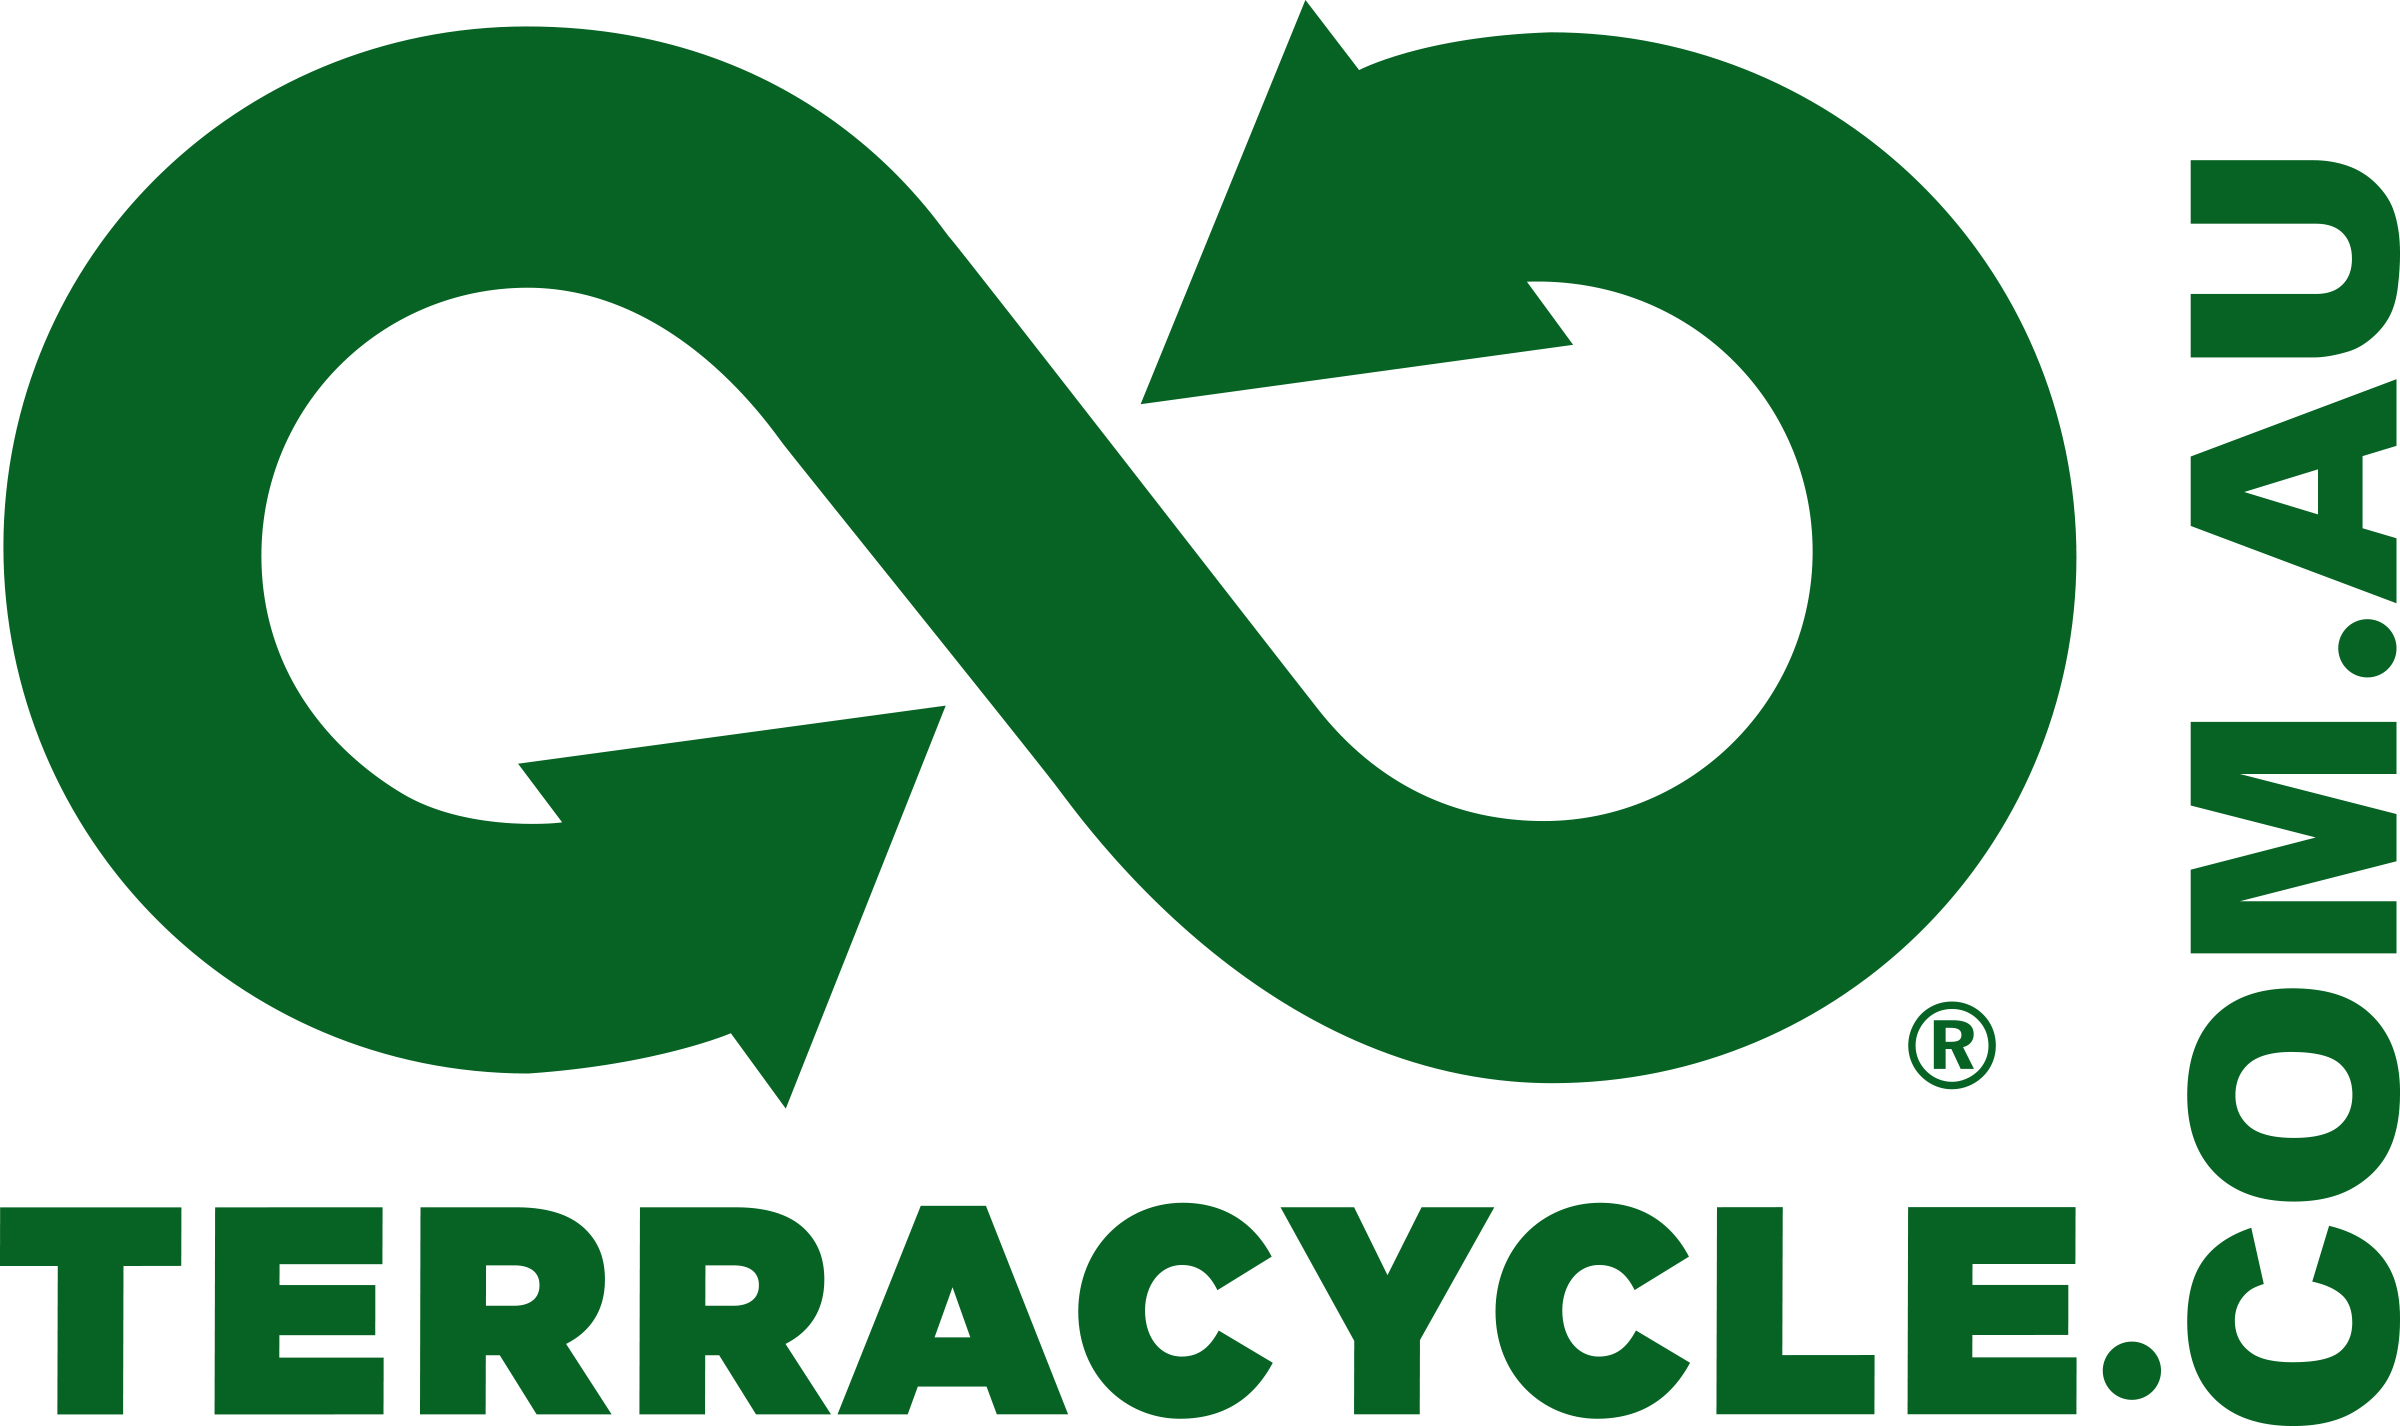 Terracycle: Australia has already joined the Cigarette Waste Brigade